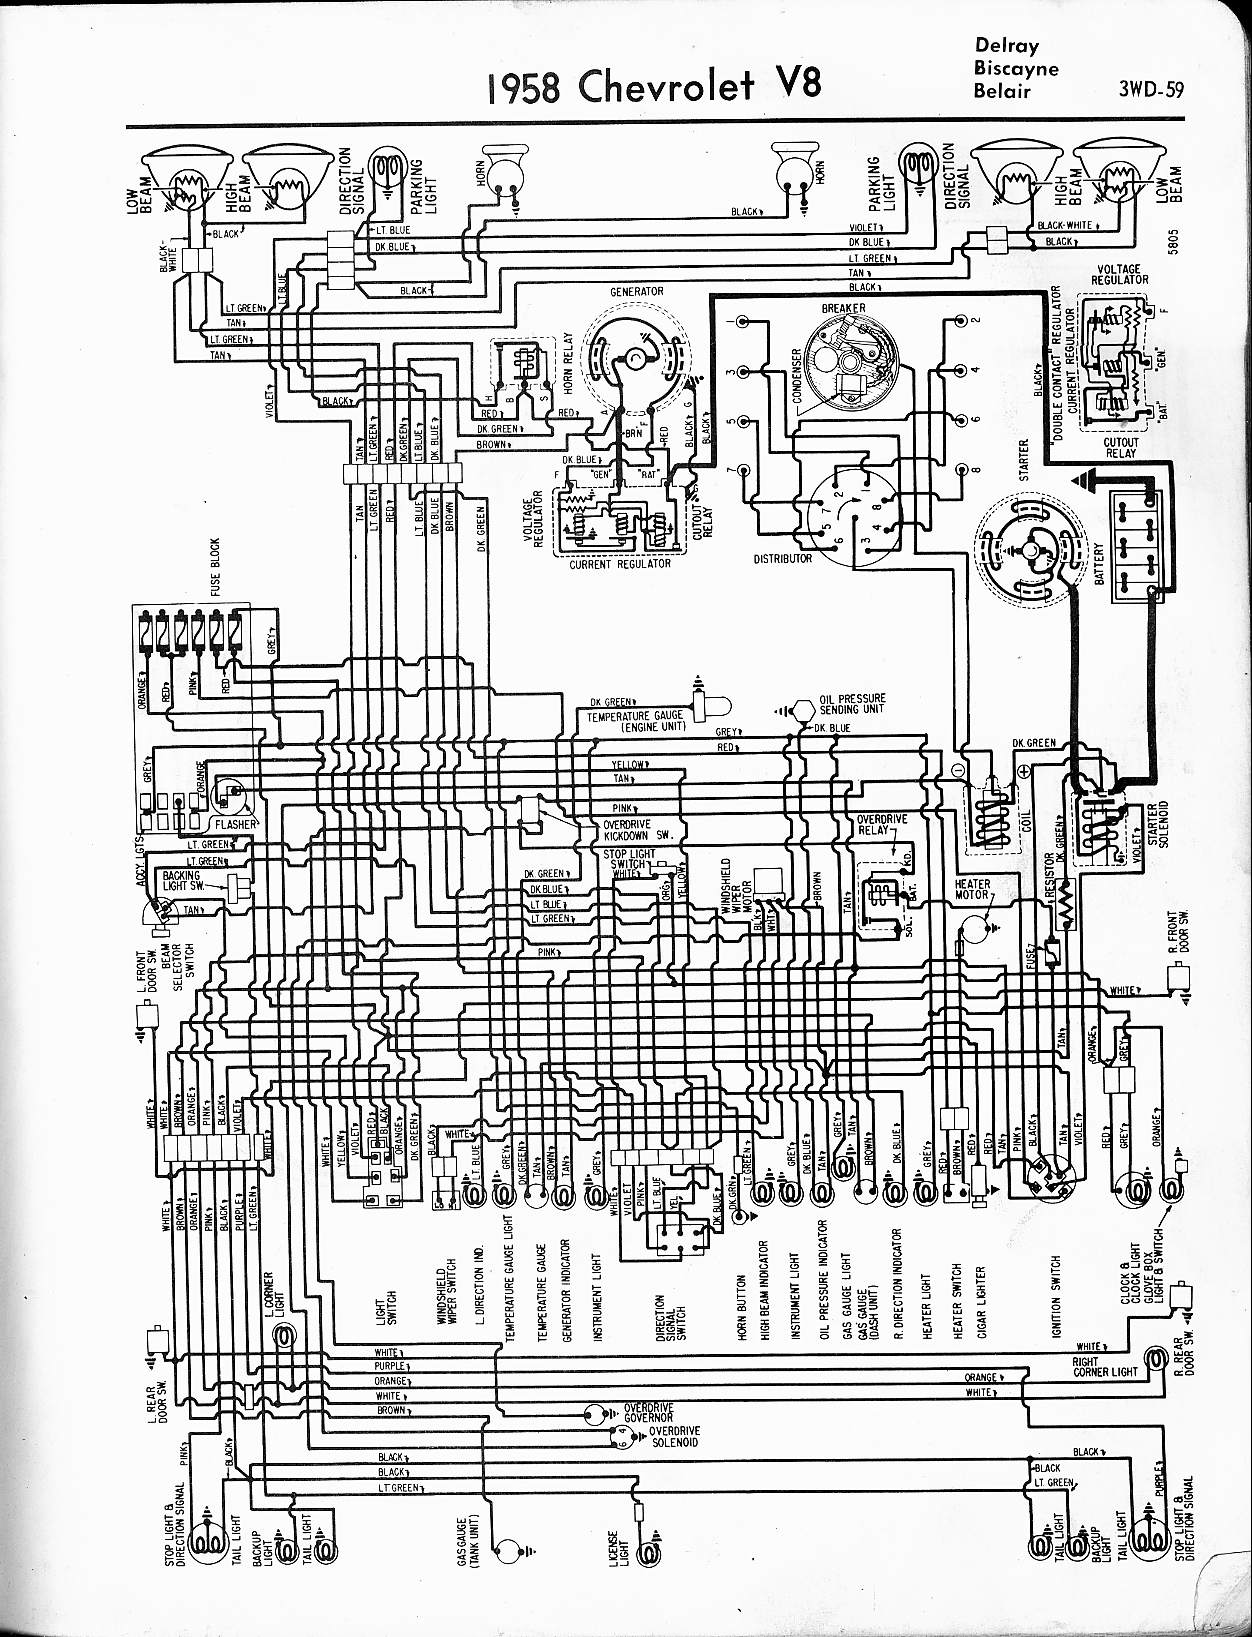 MWireChev58_3WD 059 57 65 chevy wiring diagrams GM Factory Wiring Diagram at nearapp.co